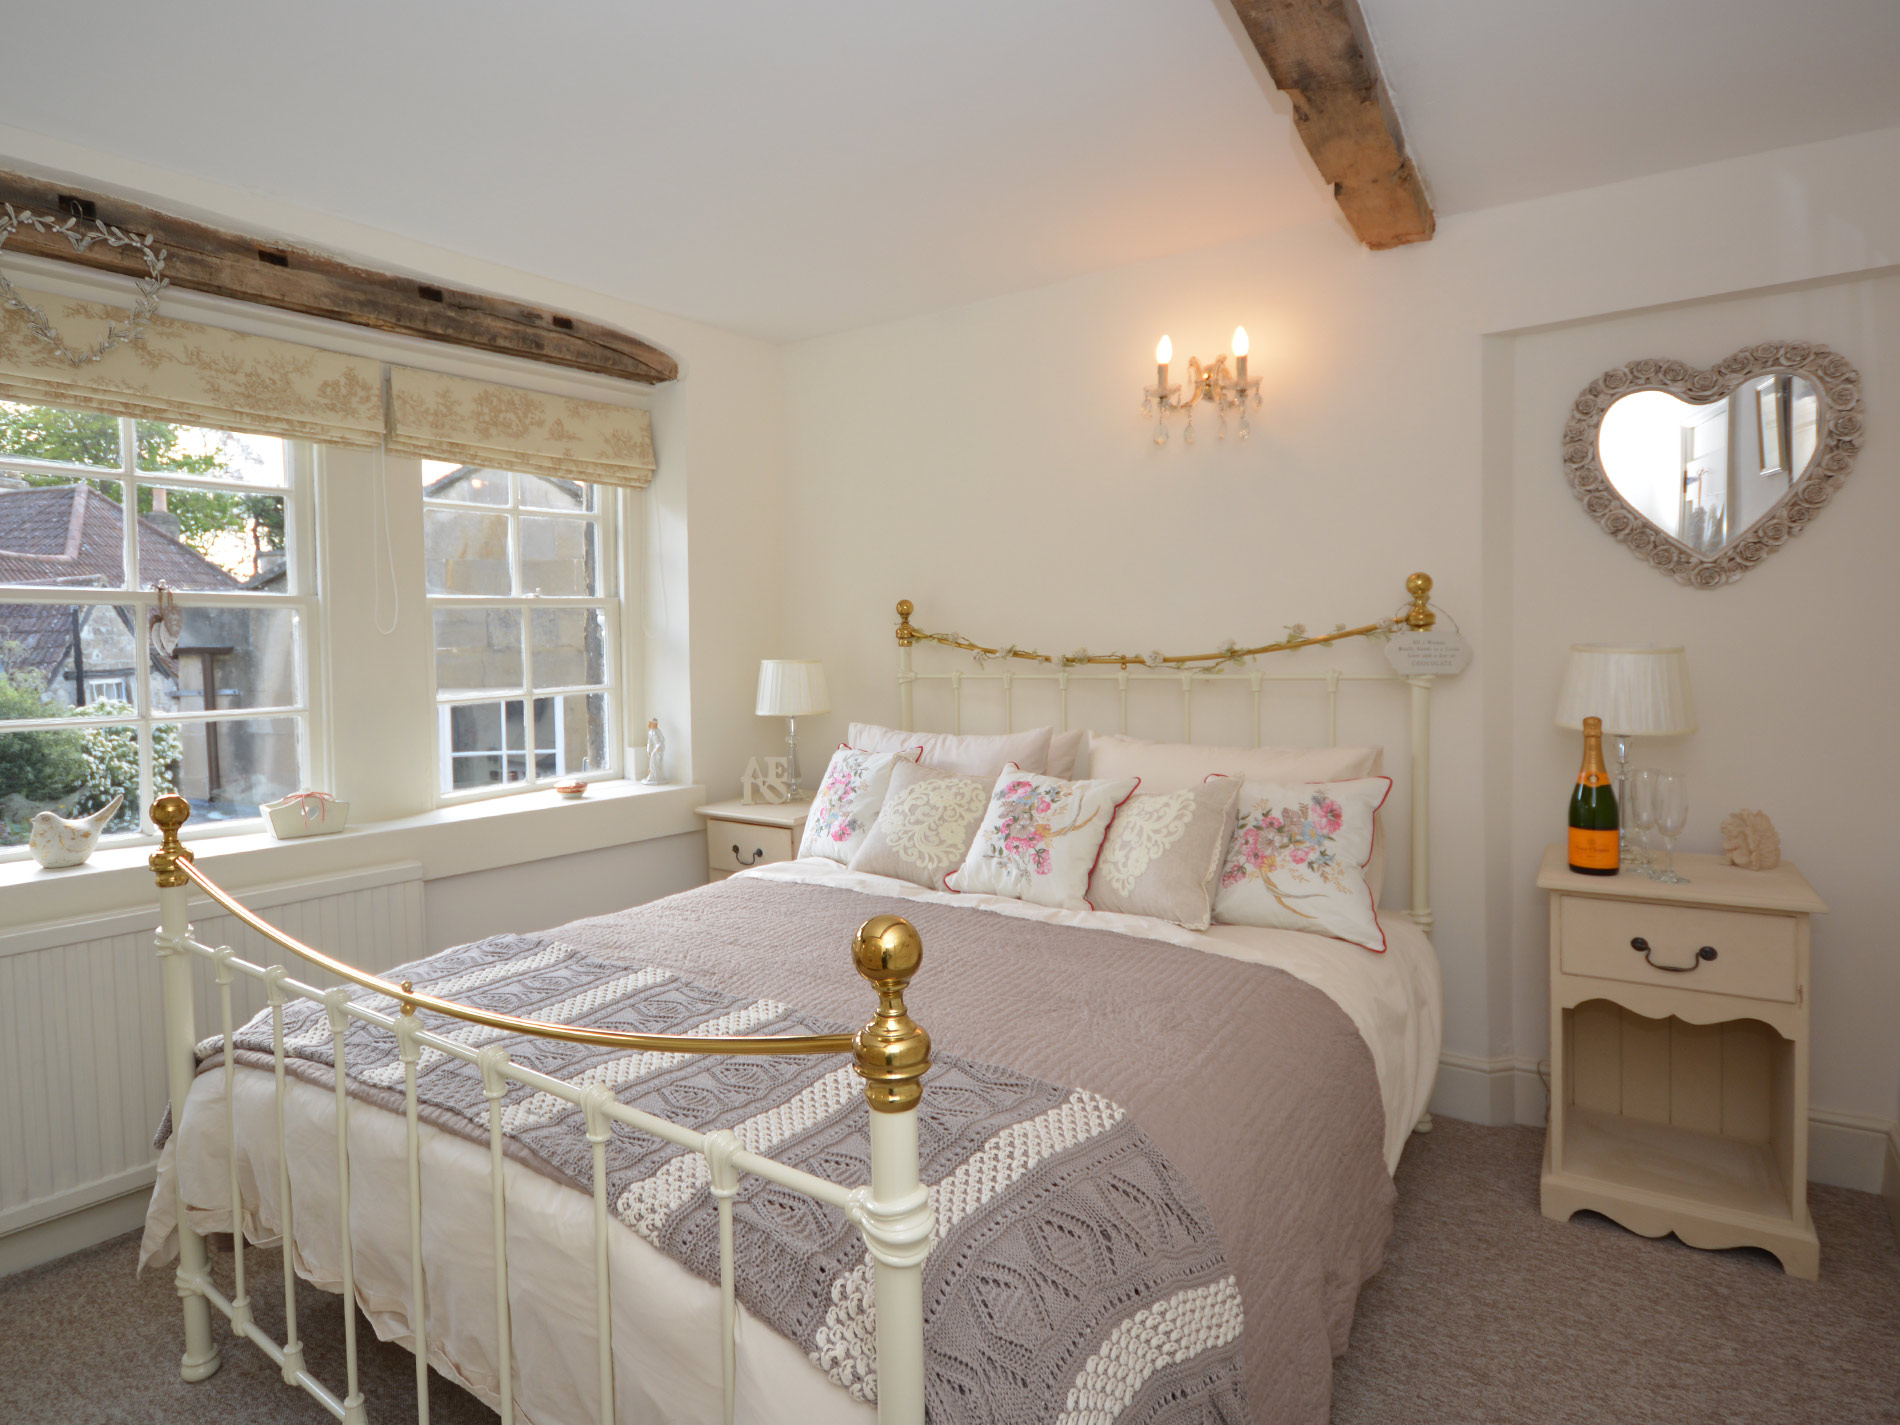 2 Bedroom Cottage in Bradford-on-avon, Dorset and Somerset